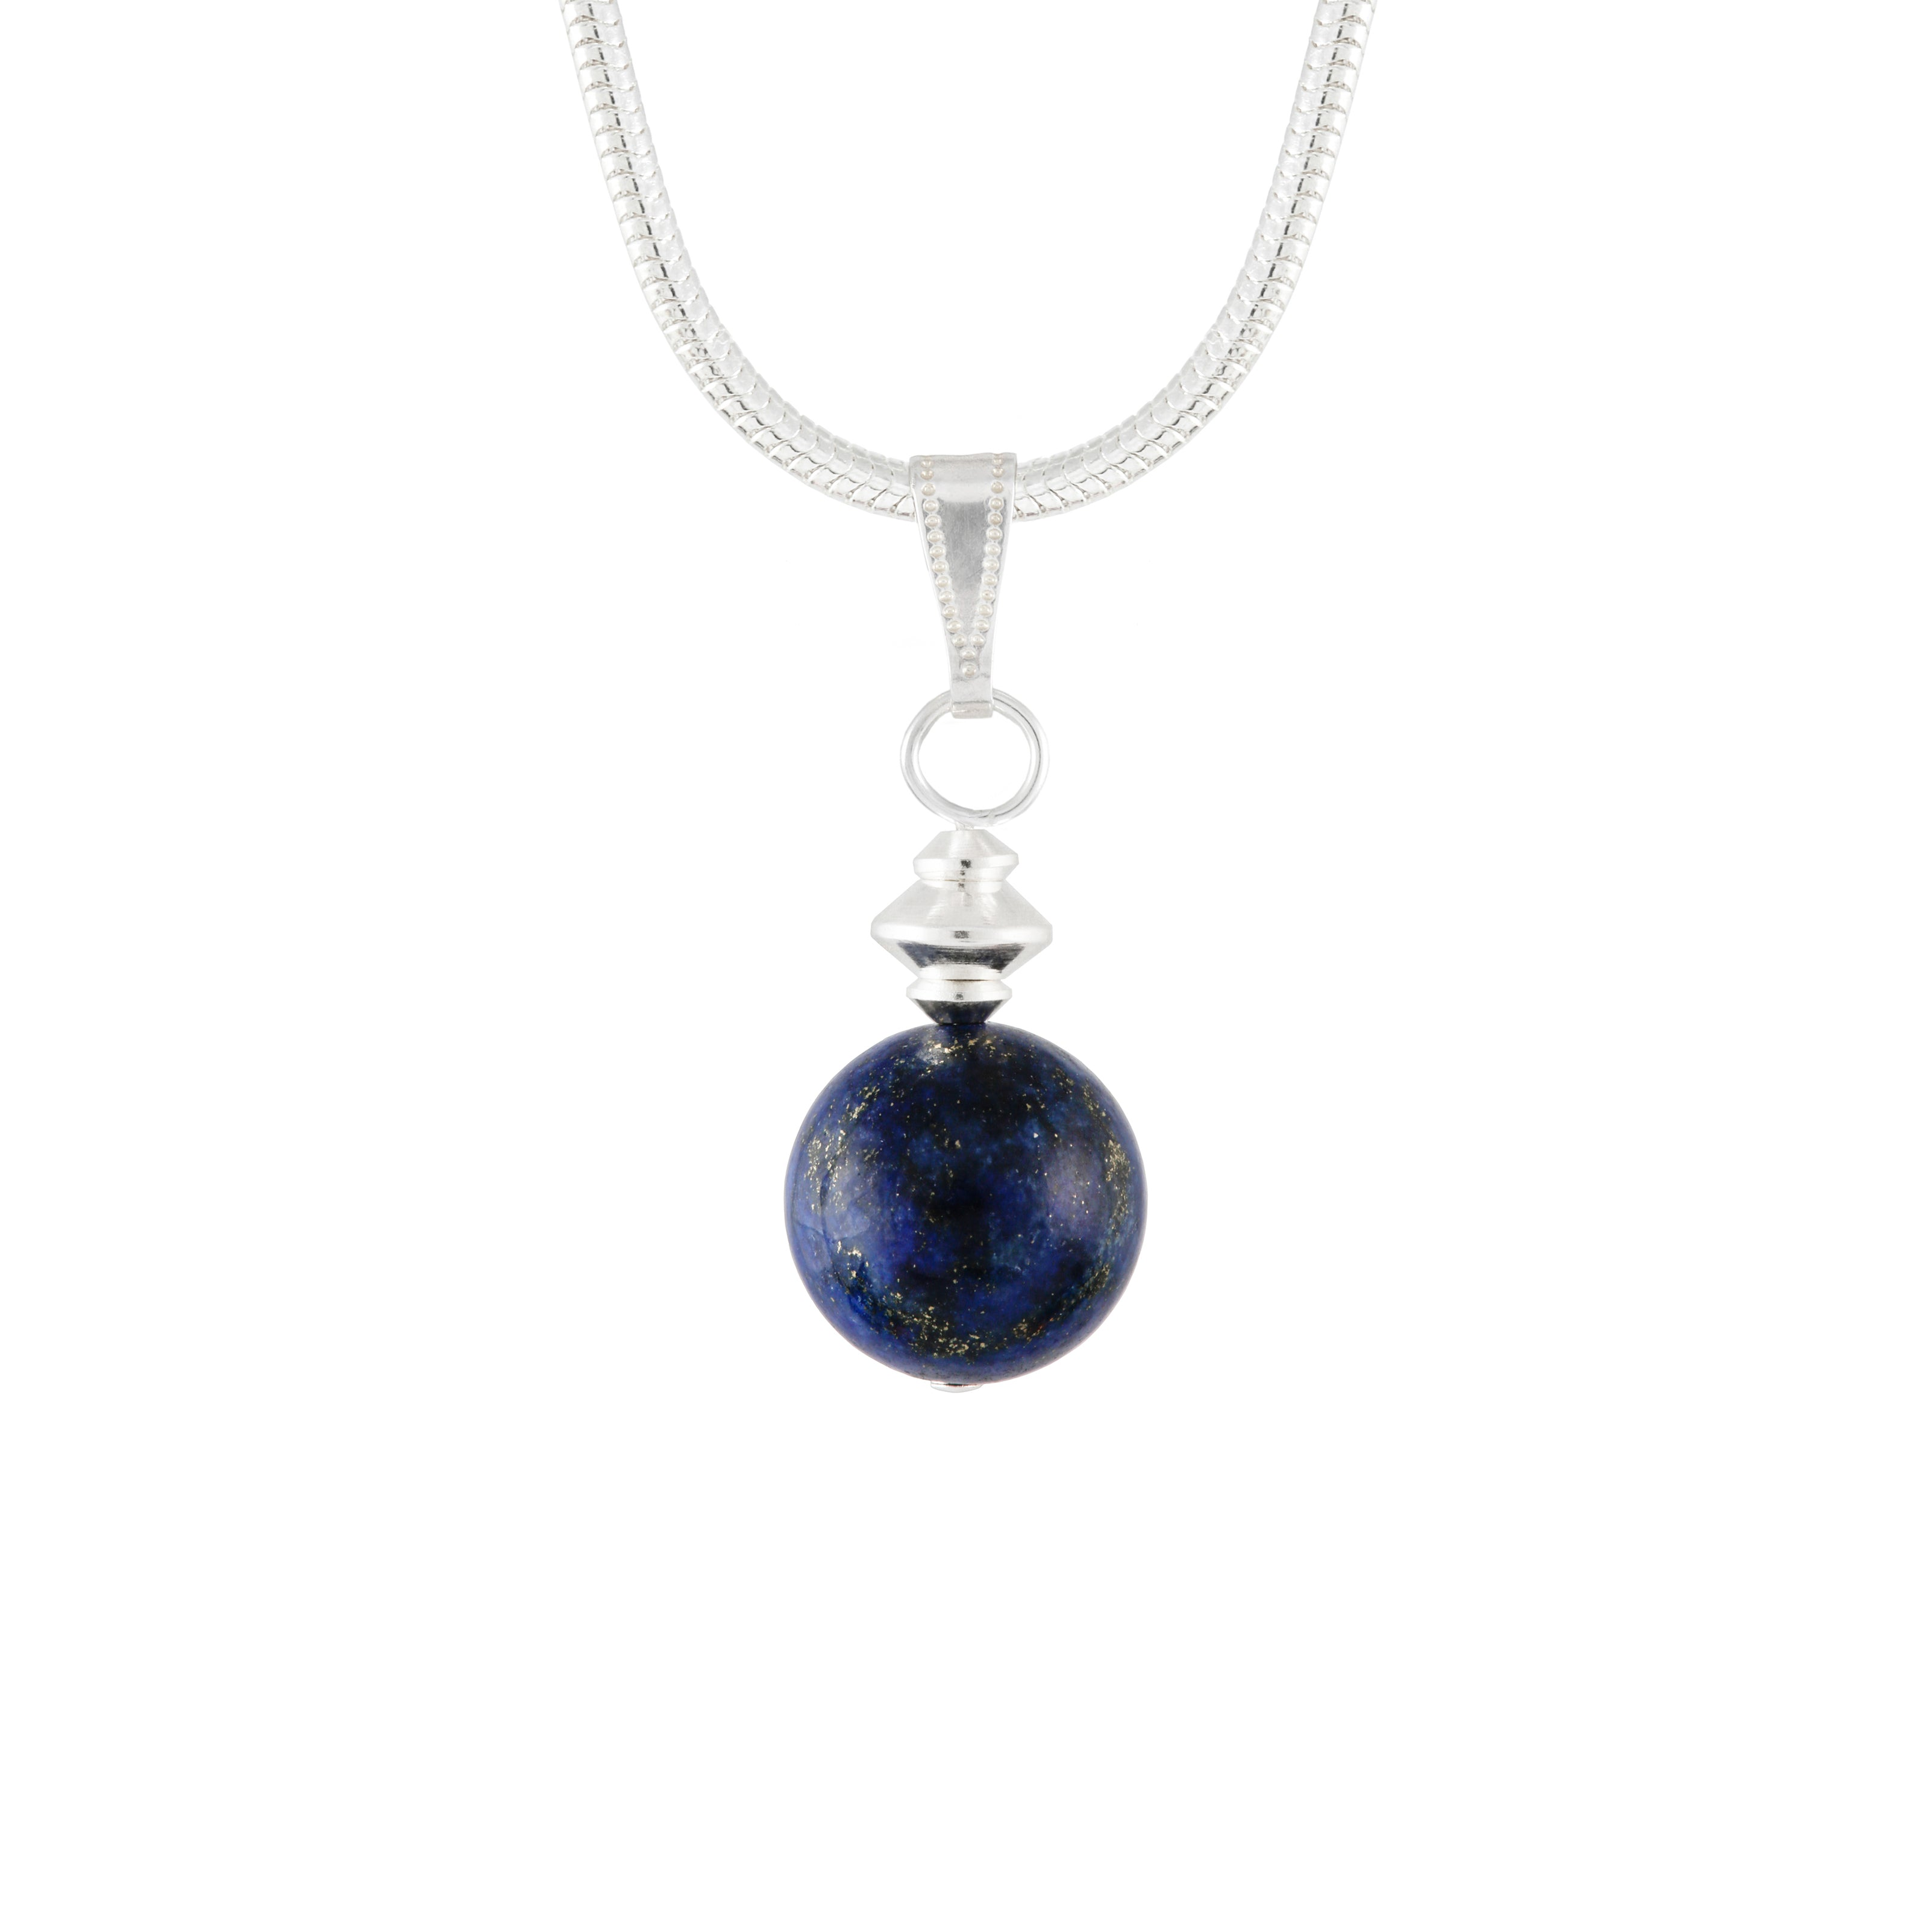 Lapis Lazuli Blue small round necklace